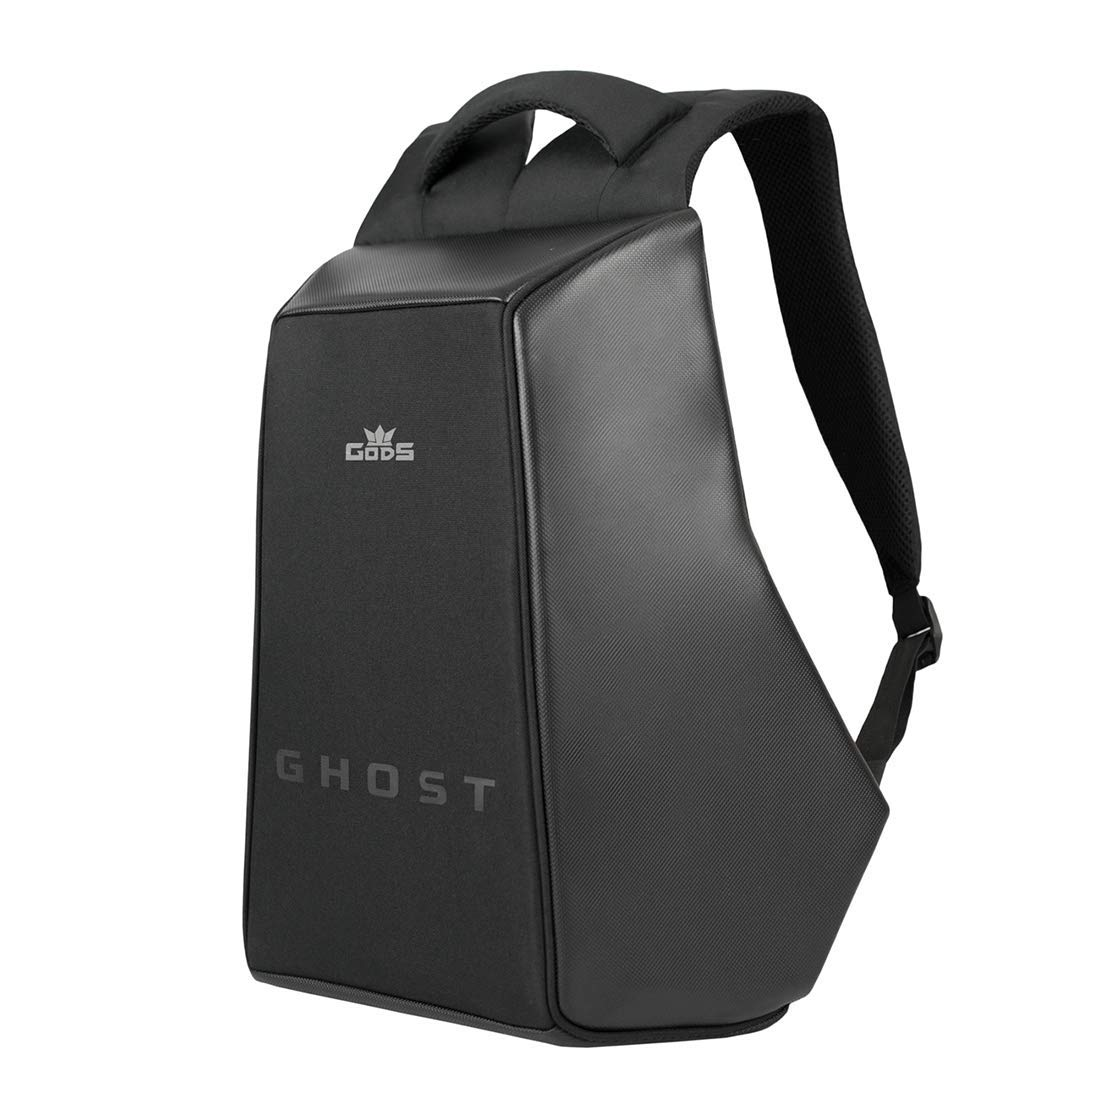 Gods Ghost 22 Litre Anti-Theft Laptop Backpack